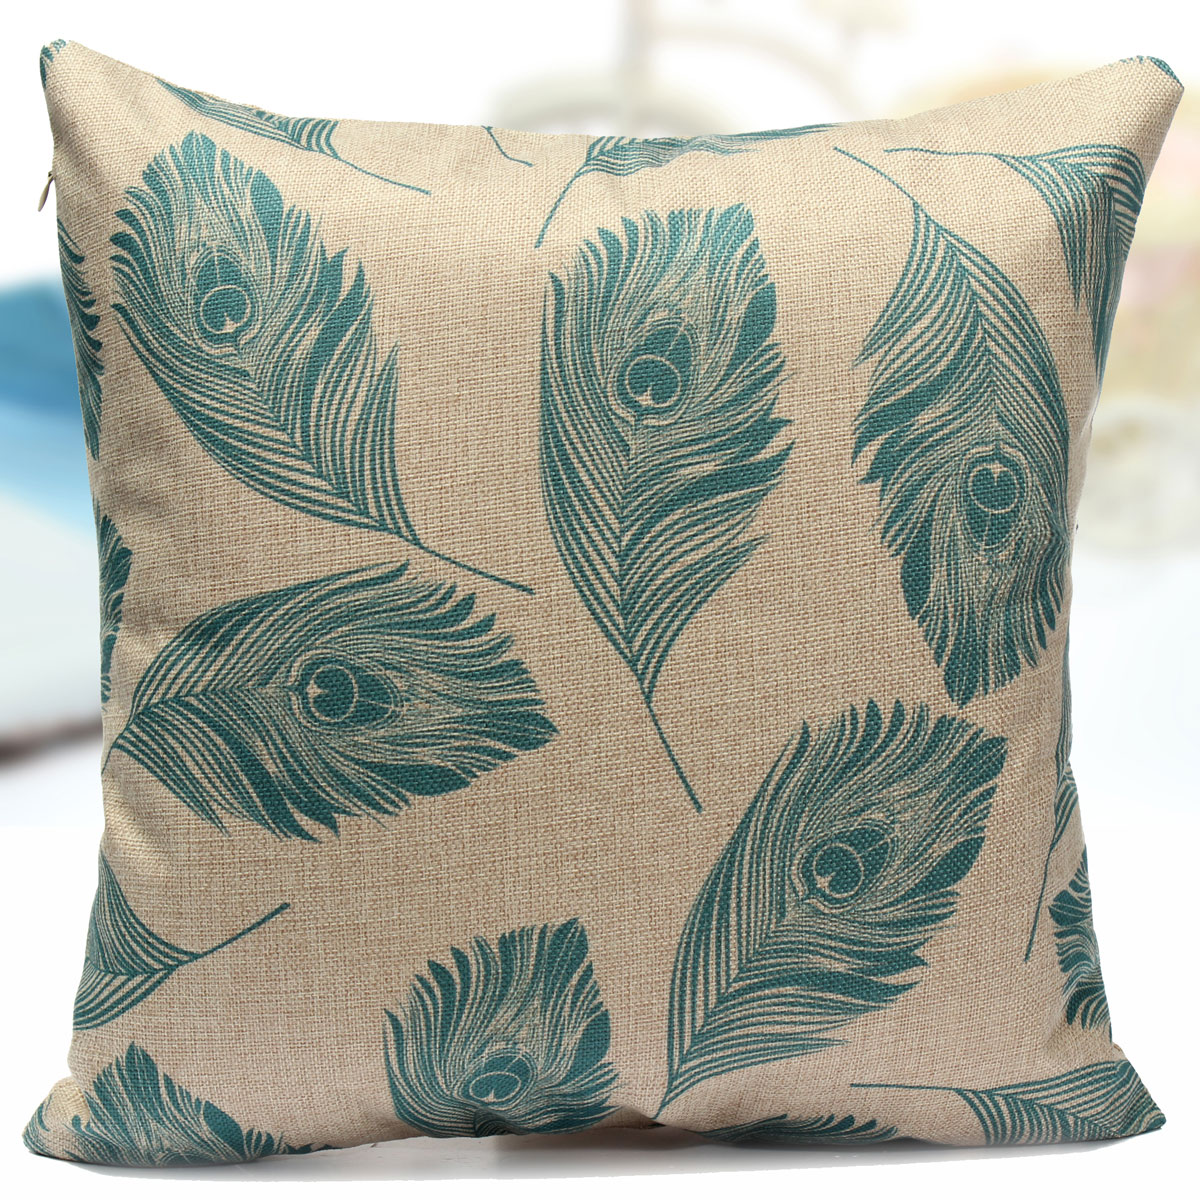 Cotton Linen Feather Throw Pillow Case Leaves Sofa Cushion Cover Home Decor eBay